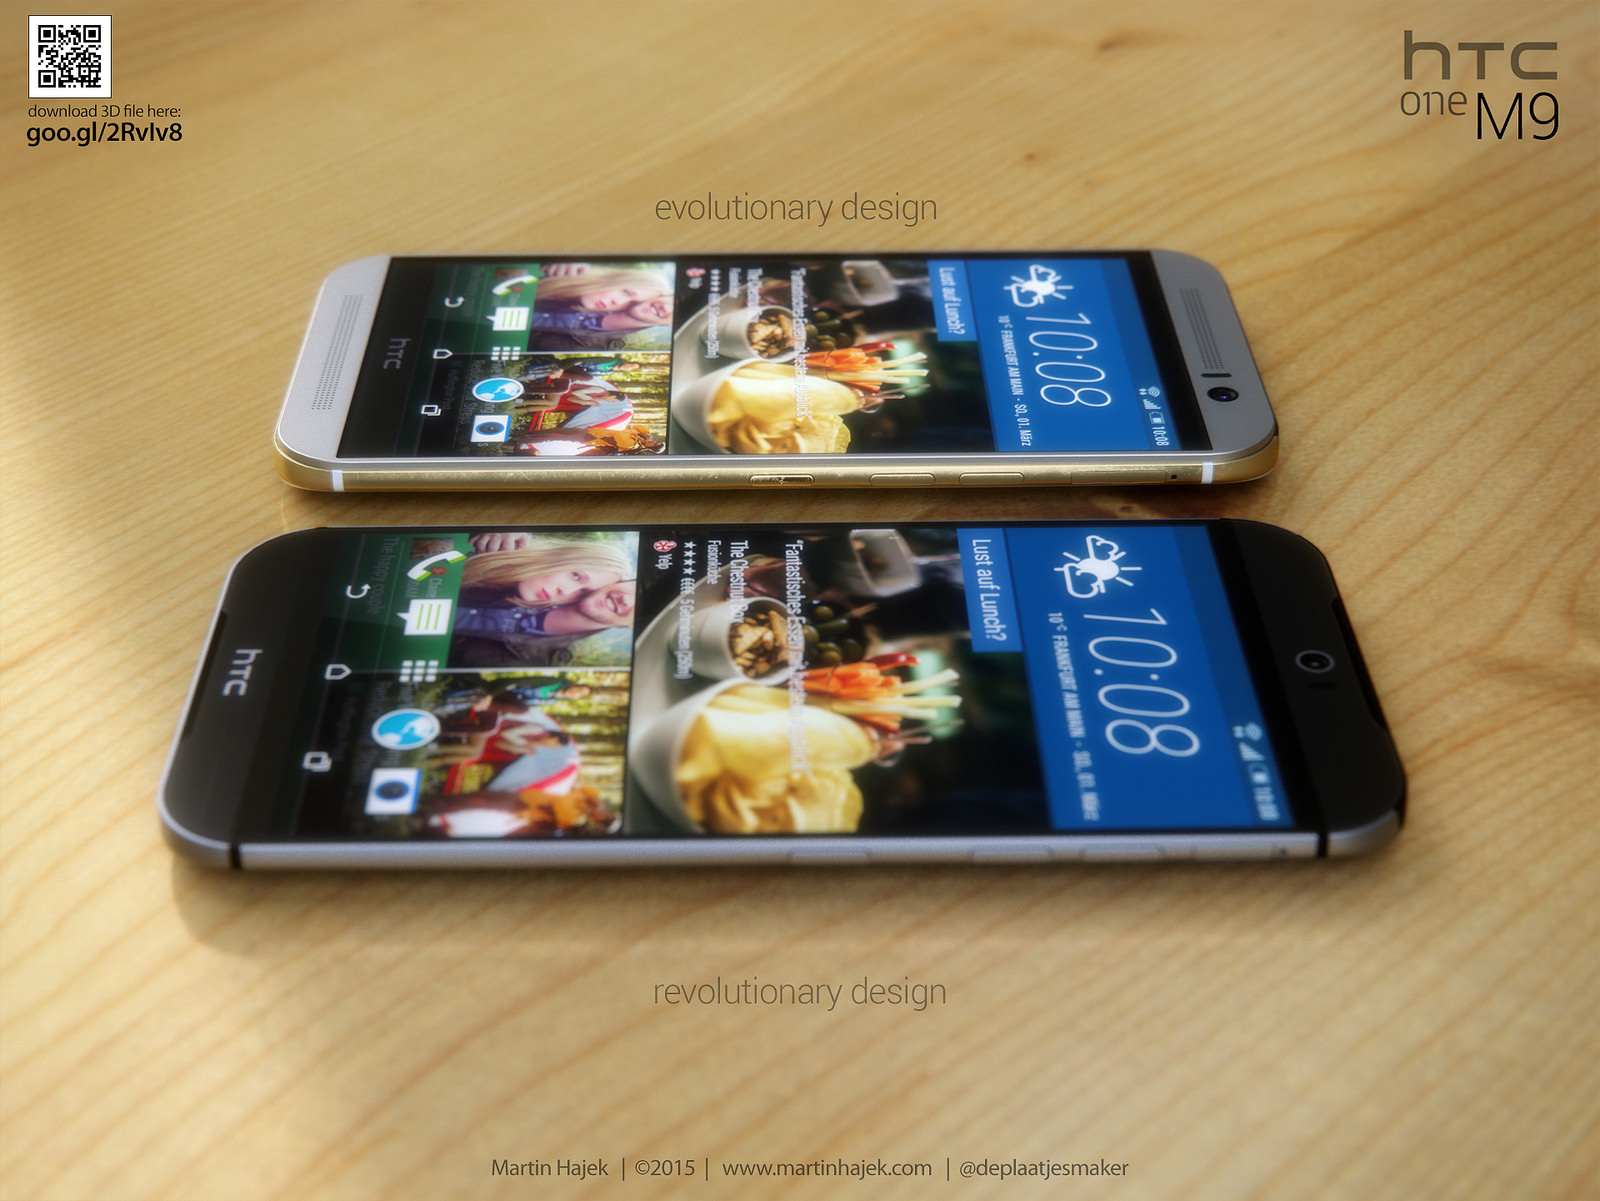 HTC-One-M9-comparativa-Martin-Hajek(12)